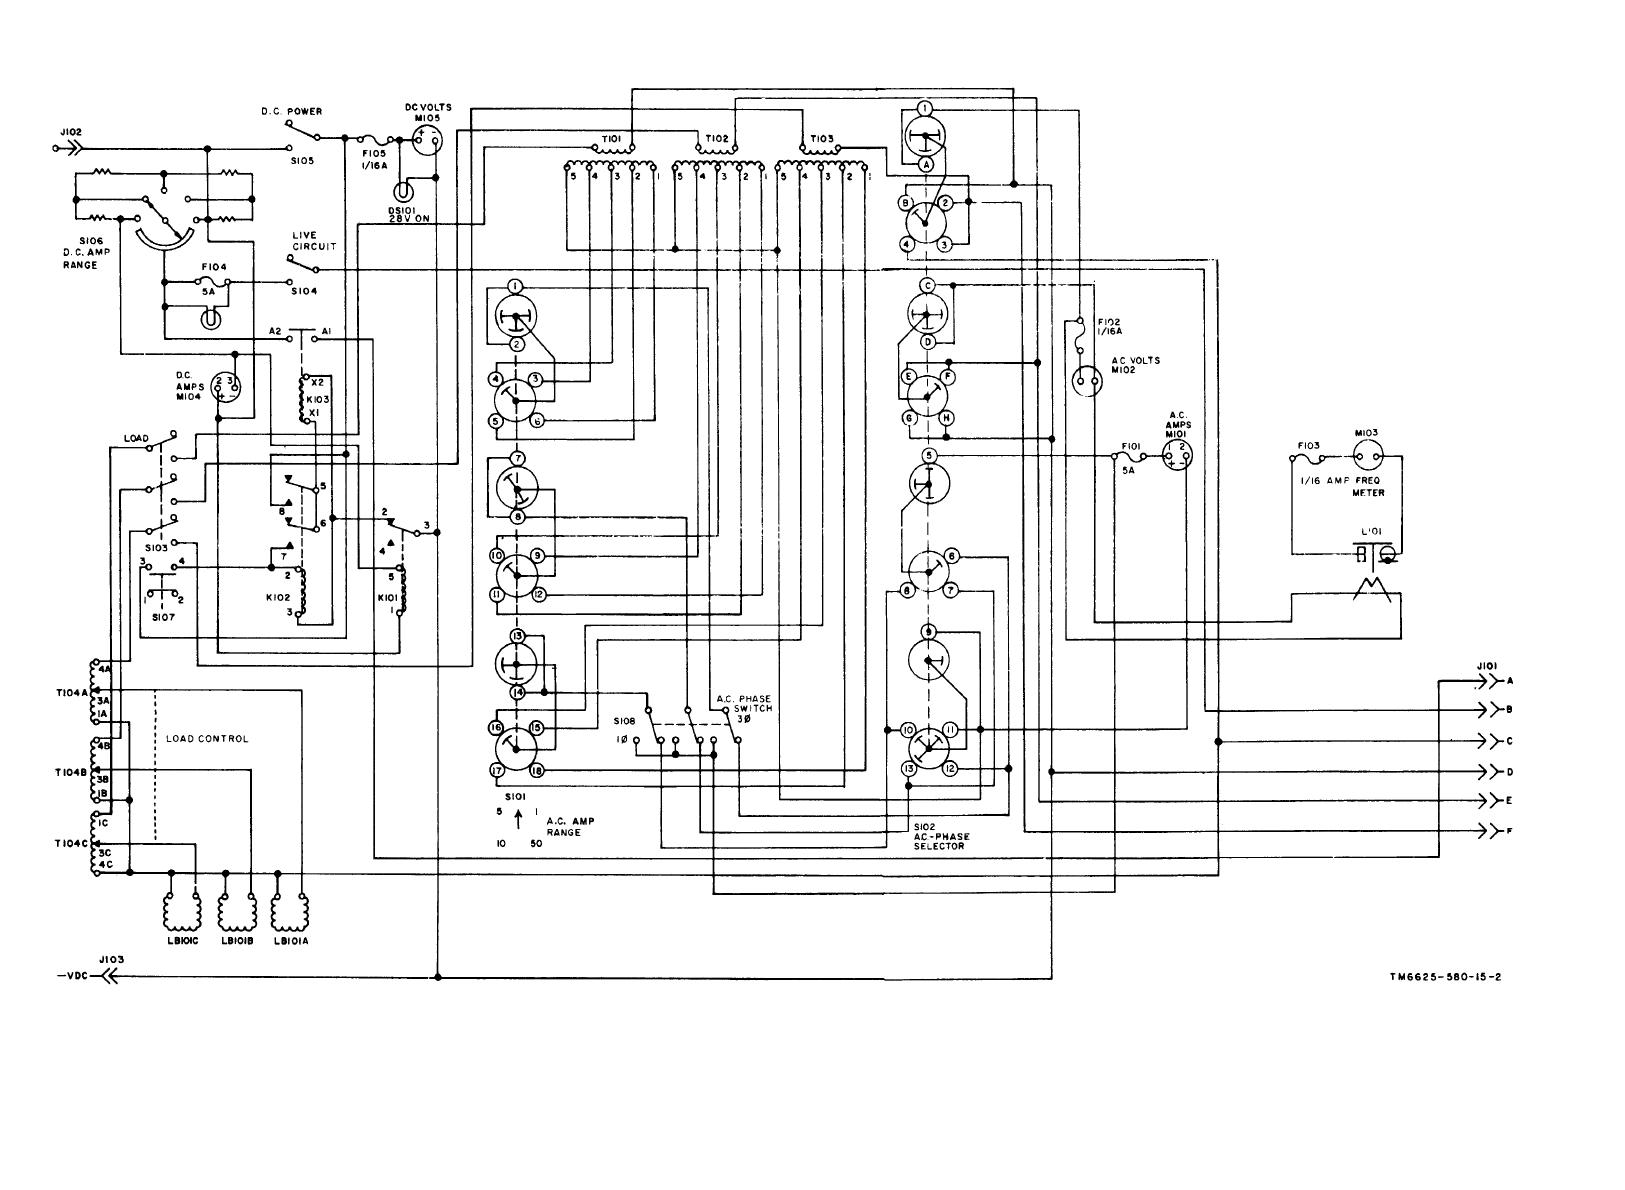 Wiring Diagrams For Aircraft Diagram Will Be A Thing Craftsman Router Manual Get Free Image Ys4500